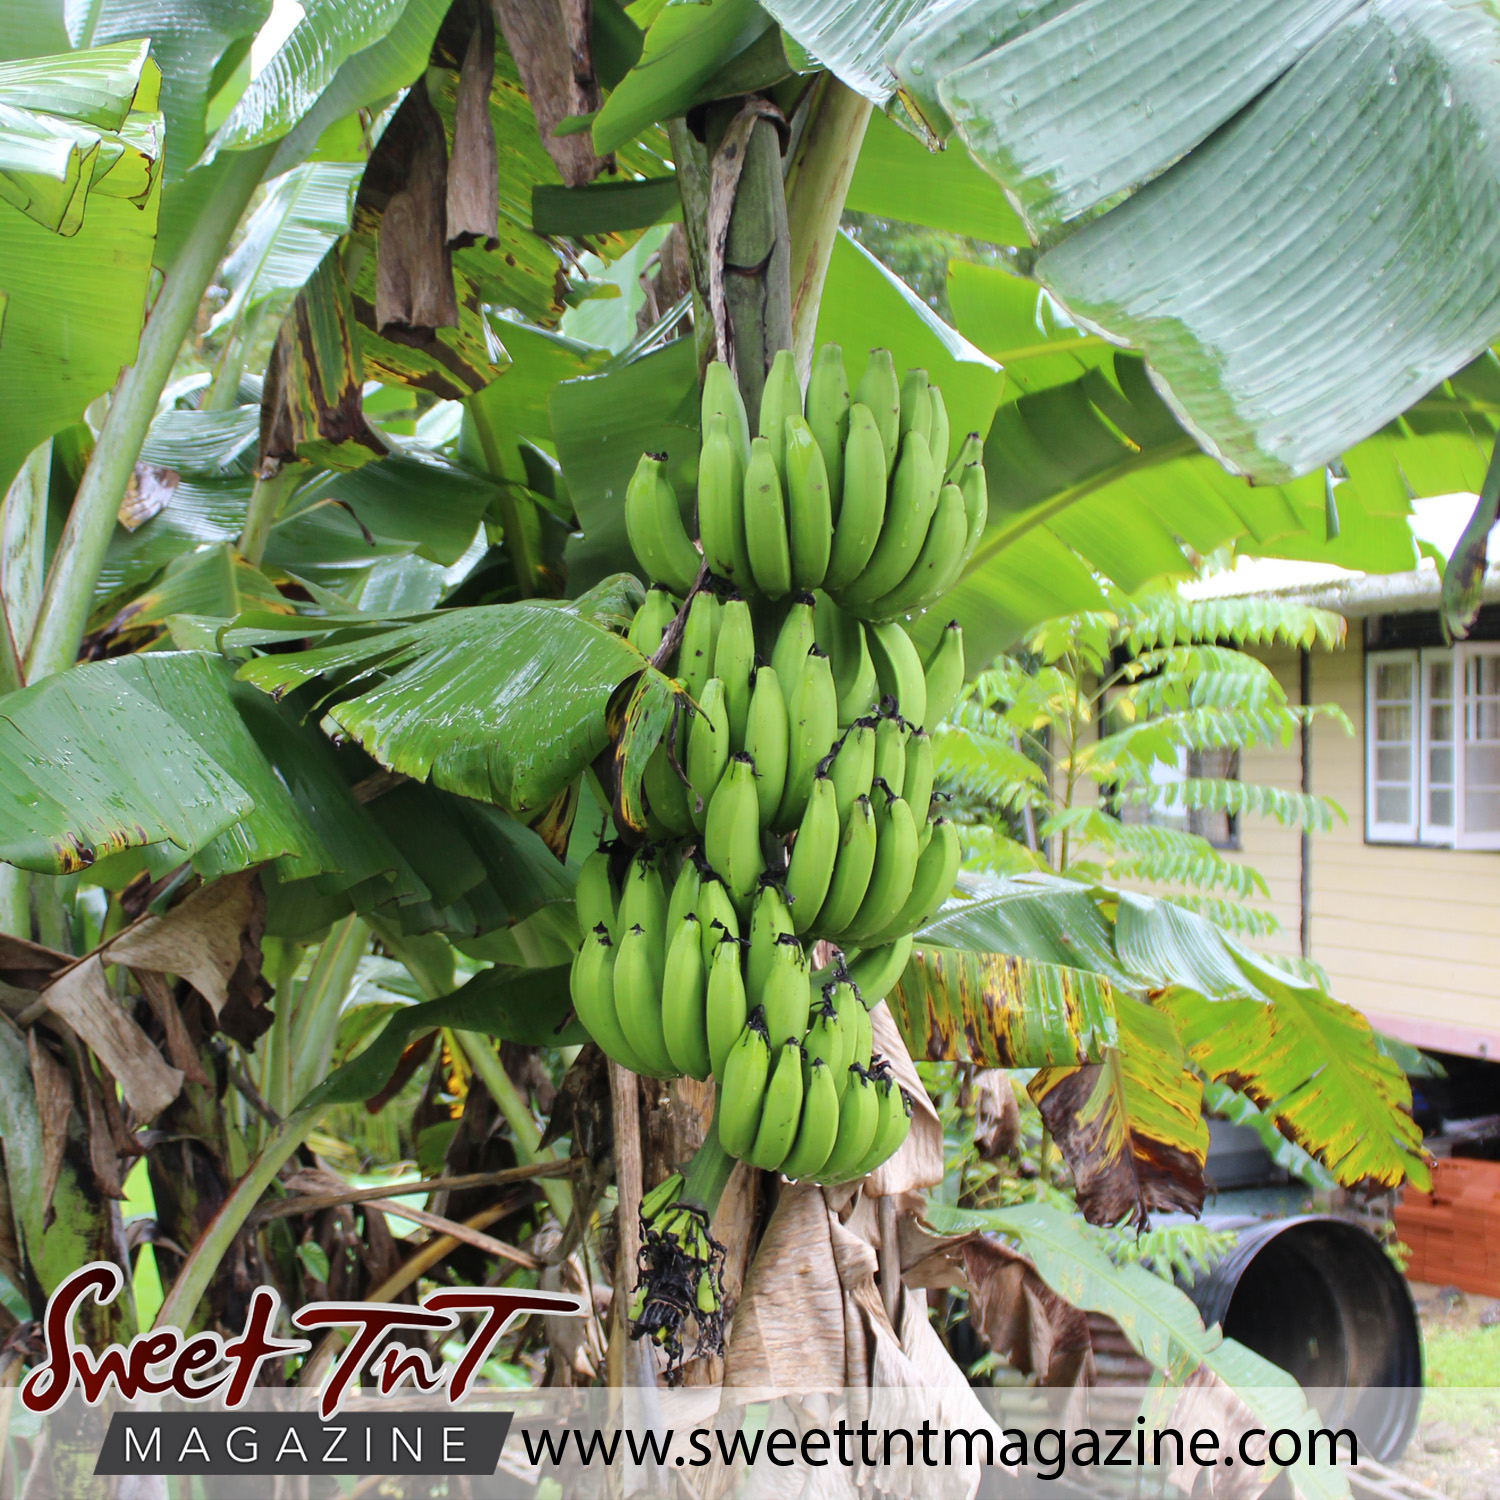 Green fig bunch in Manzanilla in sweet t&t for Sweet TnT Magazine in Trinidad and Tobago